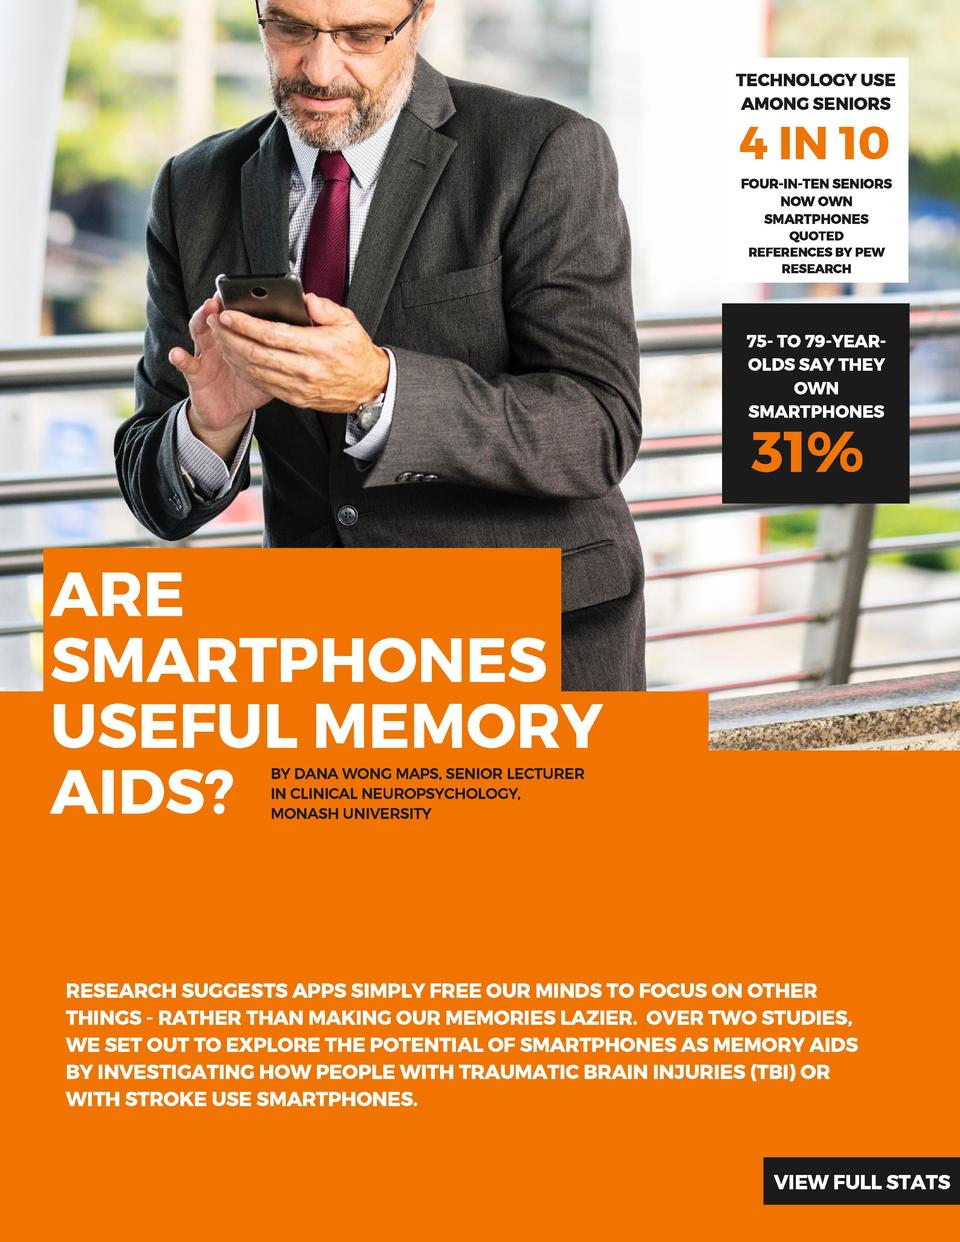 TECHNOLOGY USE AMONG SENIORS  4 IN 10 FOUR-IN-TEN SENIORS NOW OWN SMARTPHONES QUOTED REFERENCES  BY PEW RESEARCH  75- TO 7...